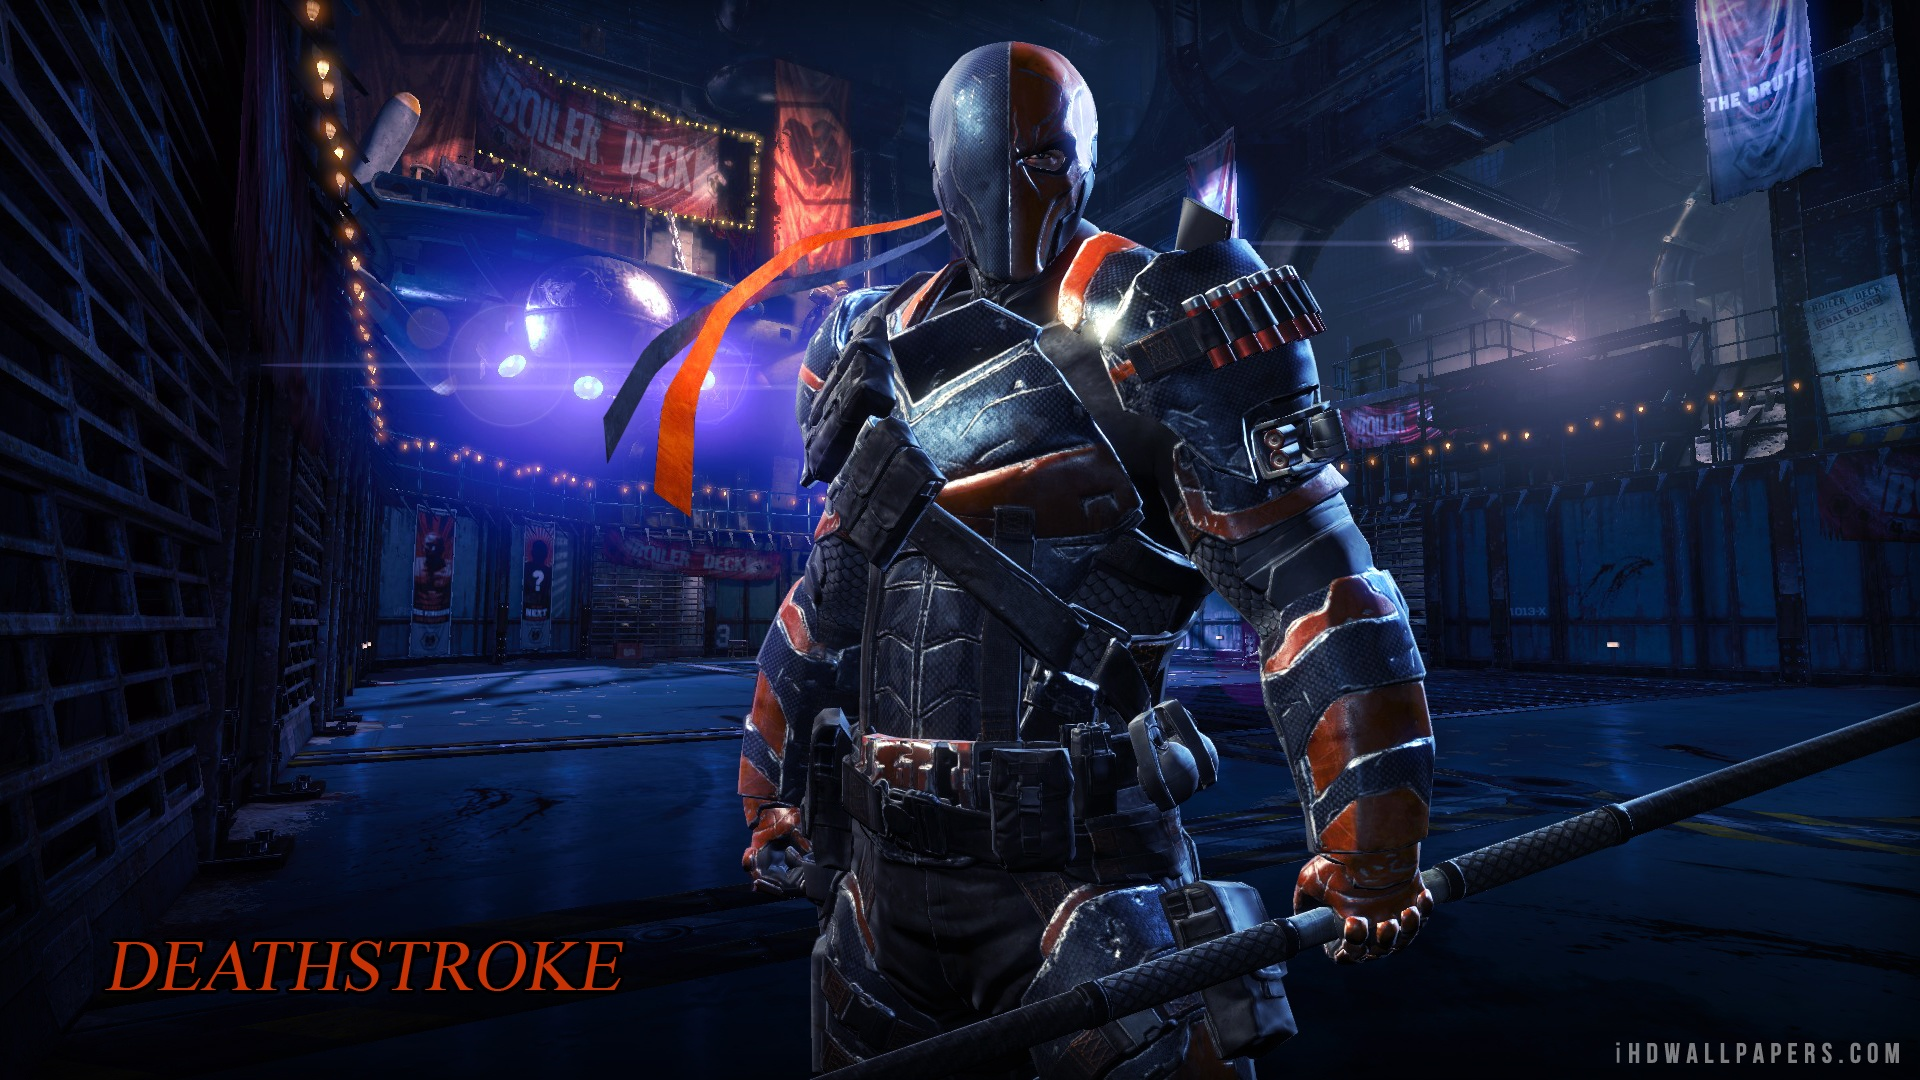 Deathstroke Arrow Wallpaper Hd 1920x1080